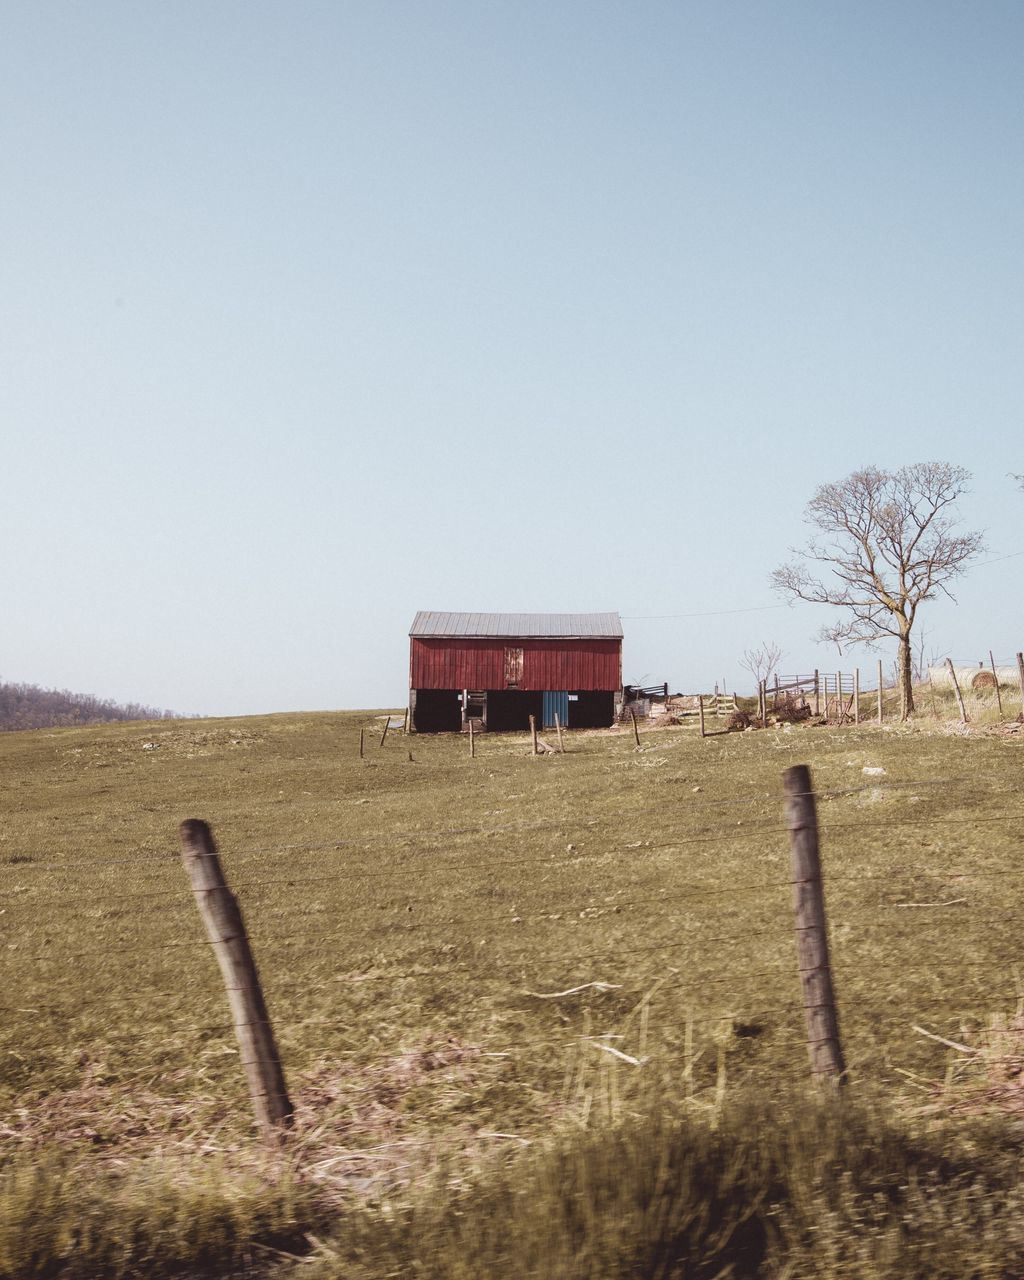 field, clear sky, landscape, built structure, grass, agriculture, architecture, no people, day, tranquility, outdoors, barn, rural scene, tree, building exterior, nature, bare tree, scenics, sky, beauty in nature